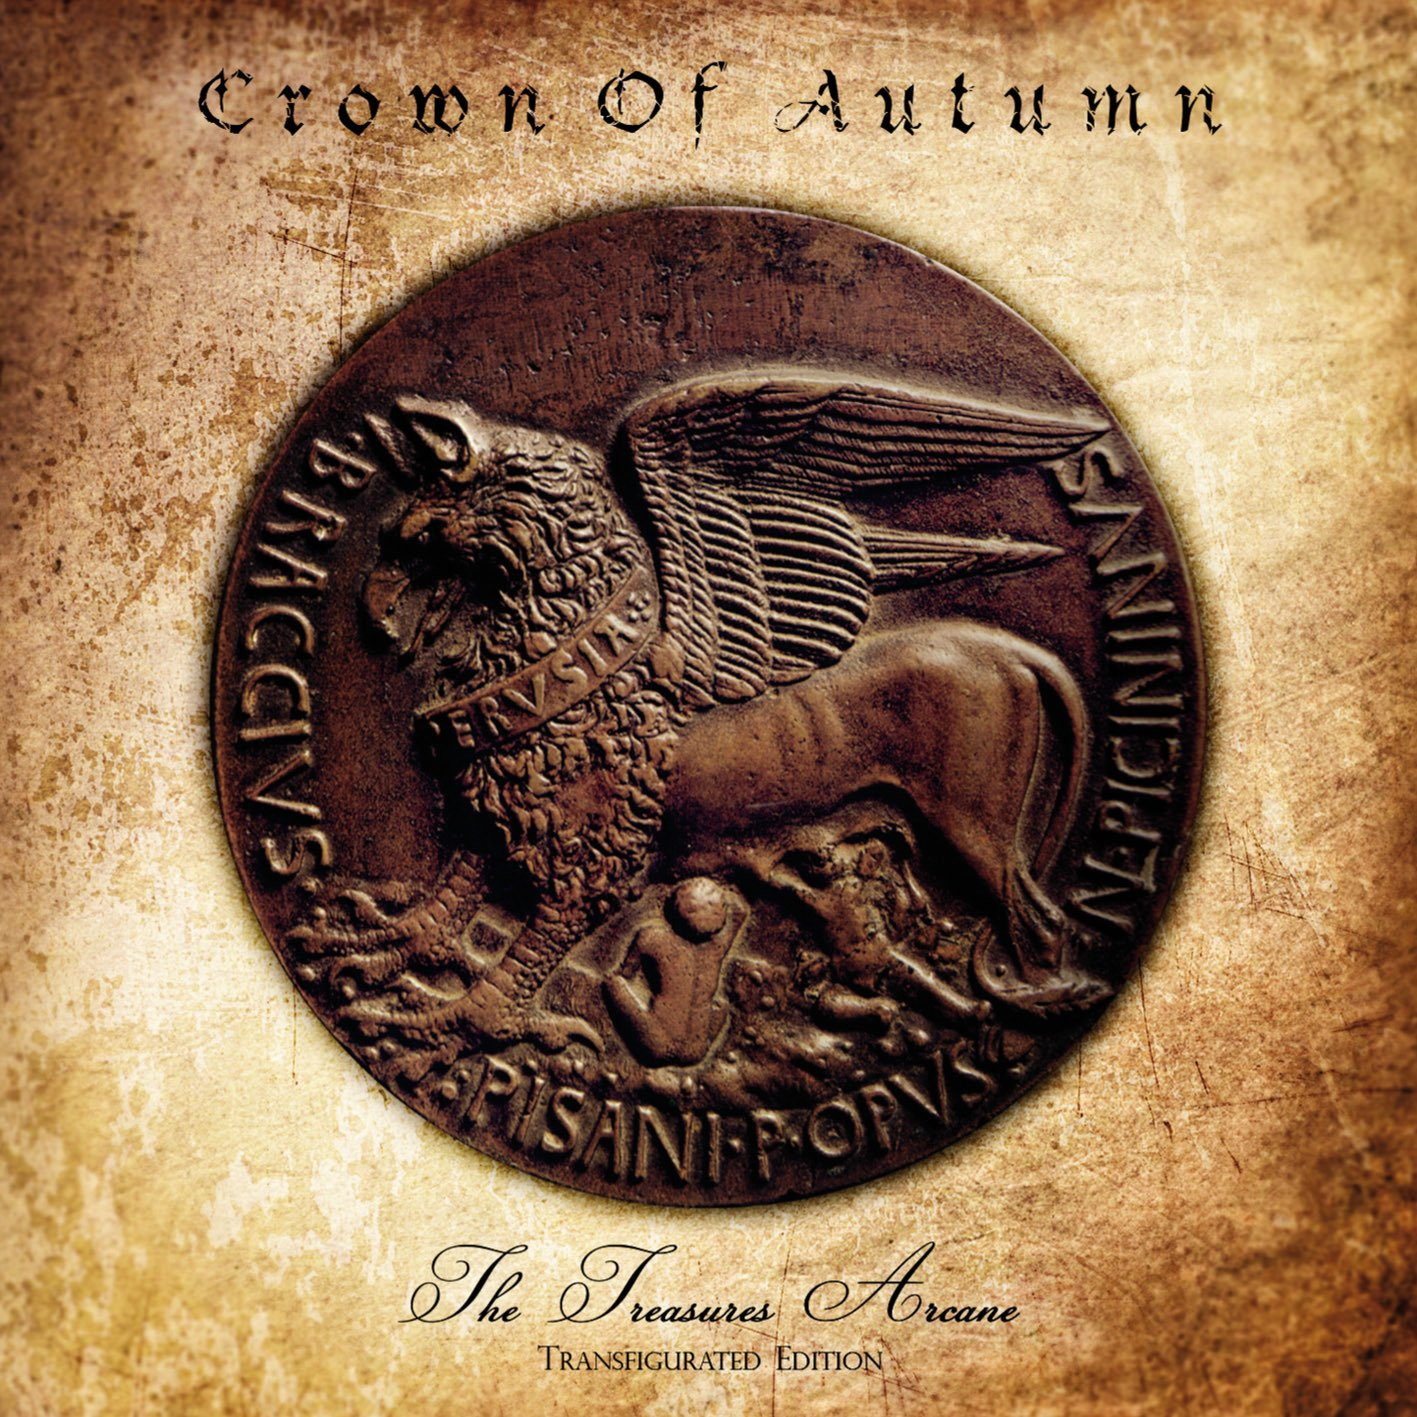 Crown Of Autumn – The Treasures Arcane (Transfigurated Edition) (2011) [FLAC]